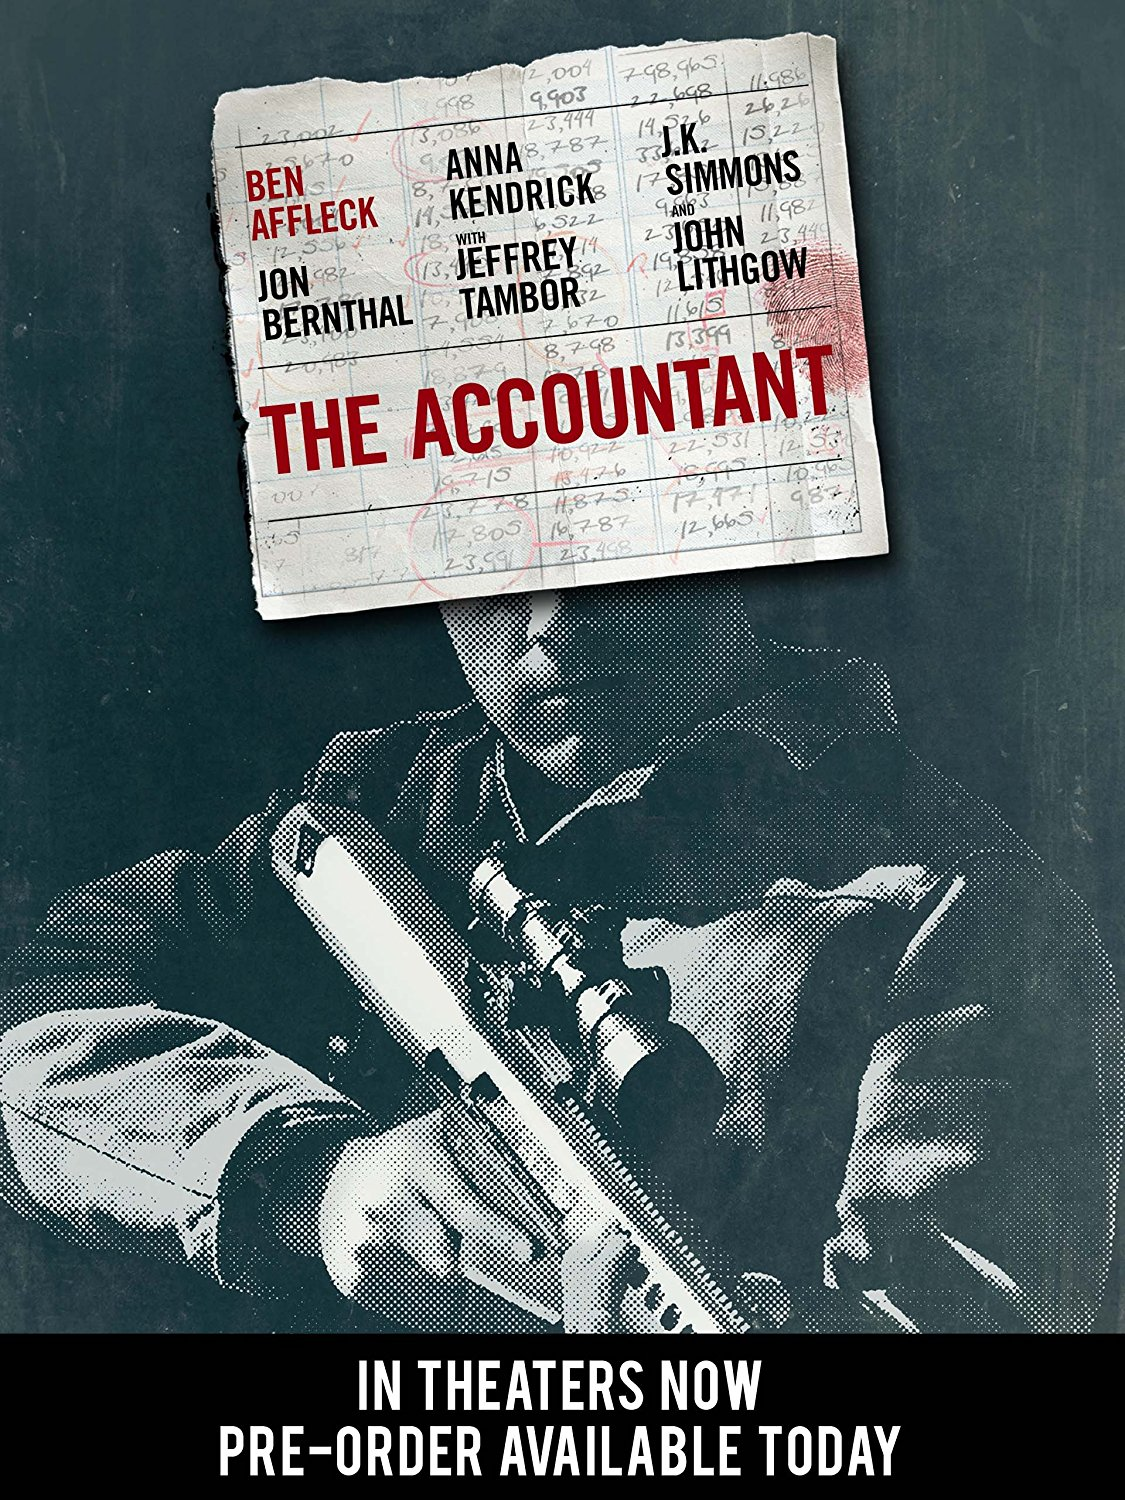 The Accountant [Movie] - The Accountant